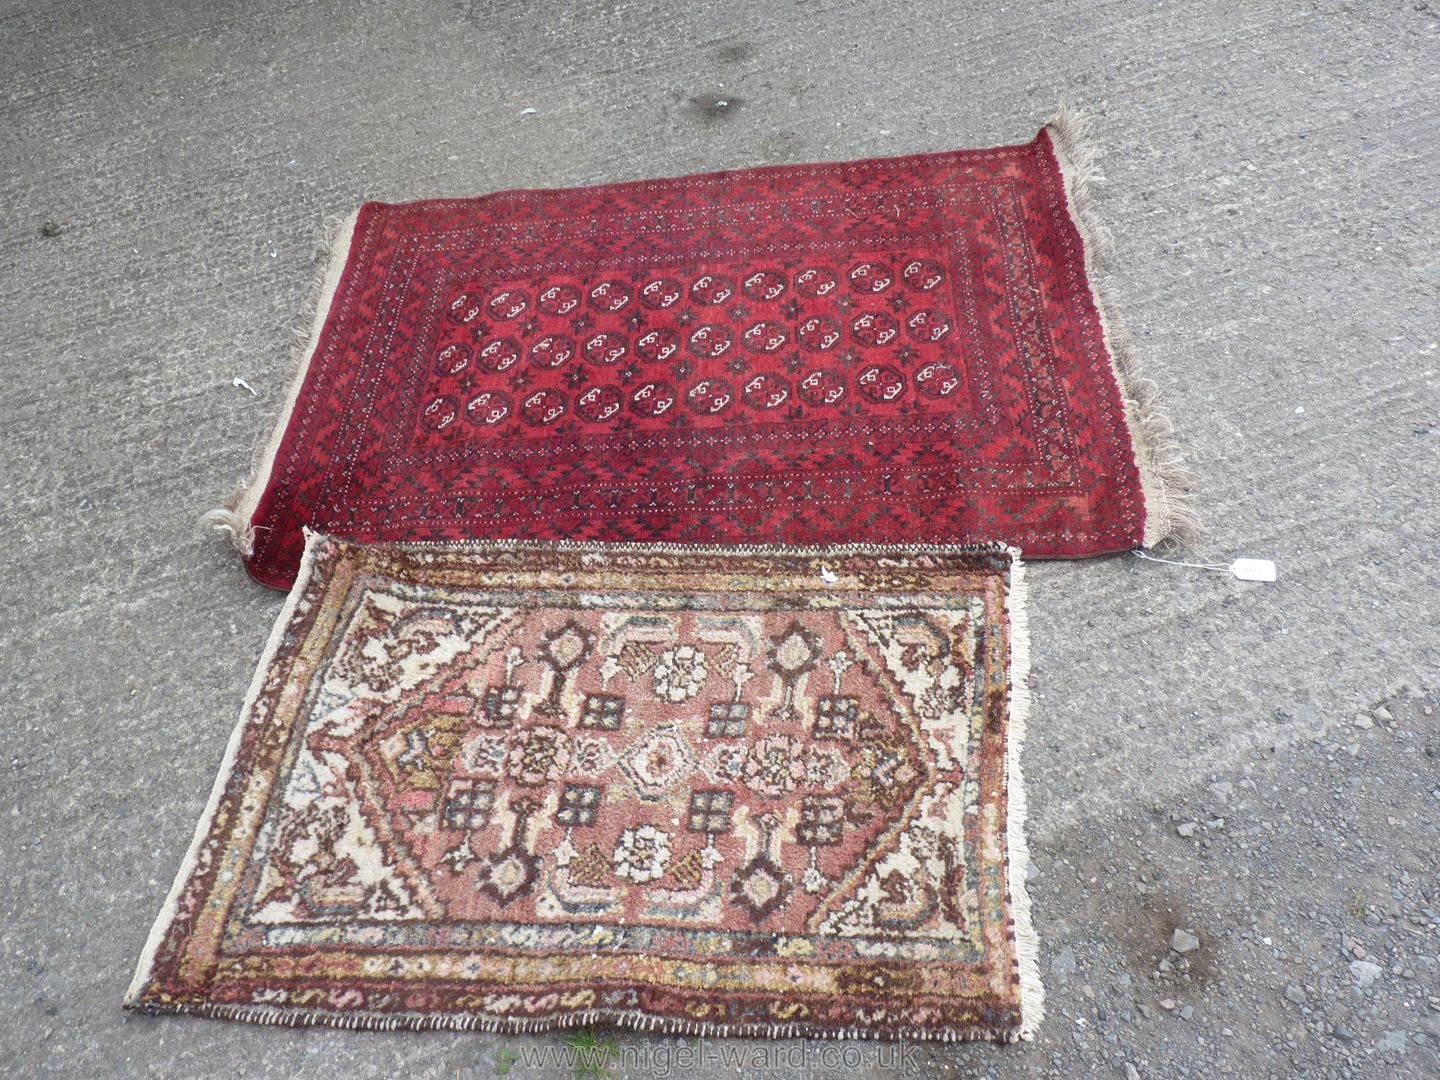 A burgundy ground bordered, patterned and fringed wool Rug with geometric pattern,